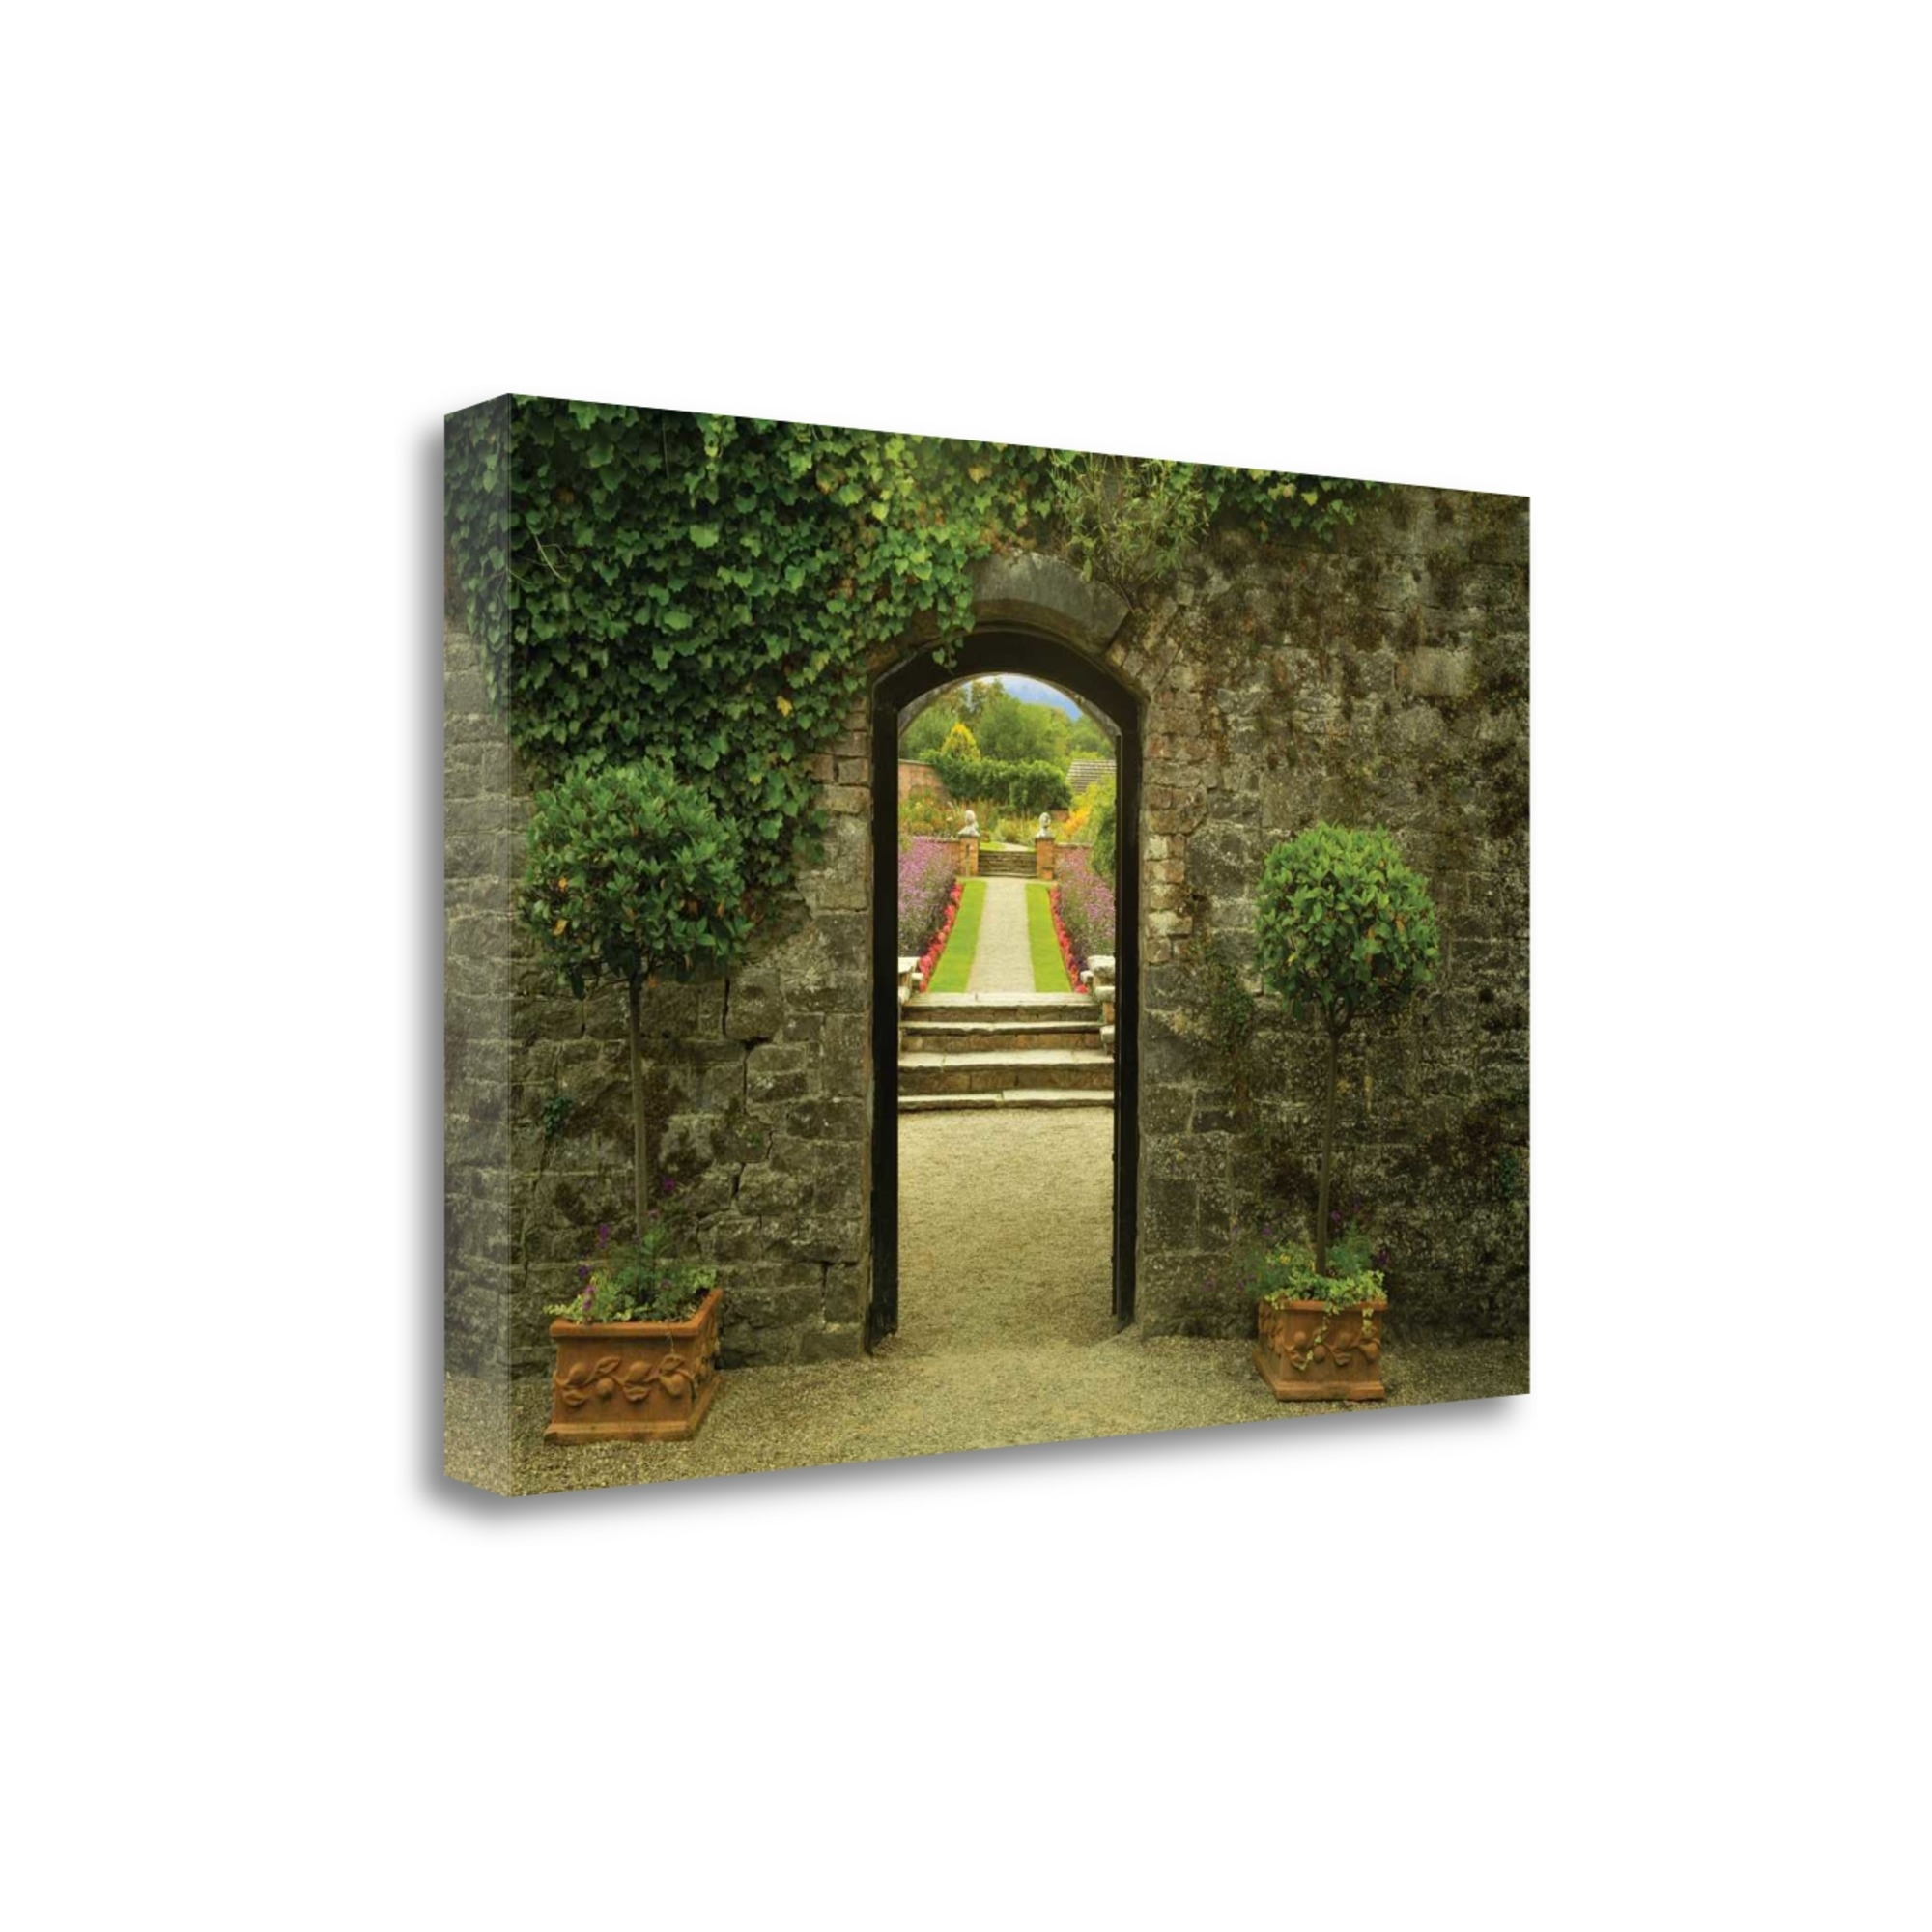 "Garden Arch By Dennis Frates, 34"" x 23\"" Fine Art Giclee Print on Gallery Wrap Canvas, Ready to Hang"